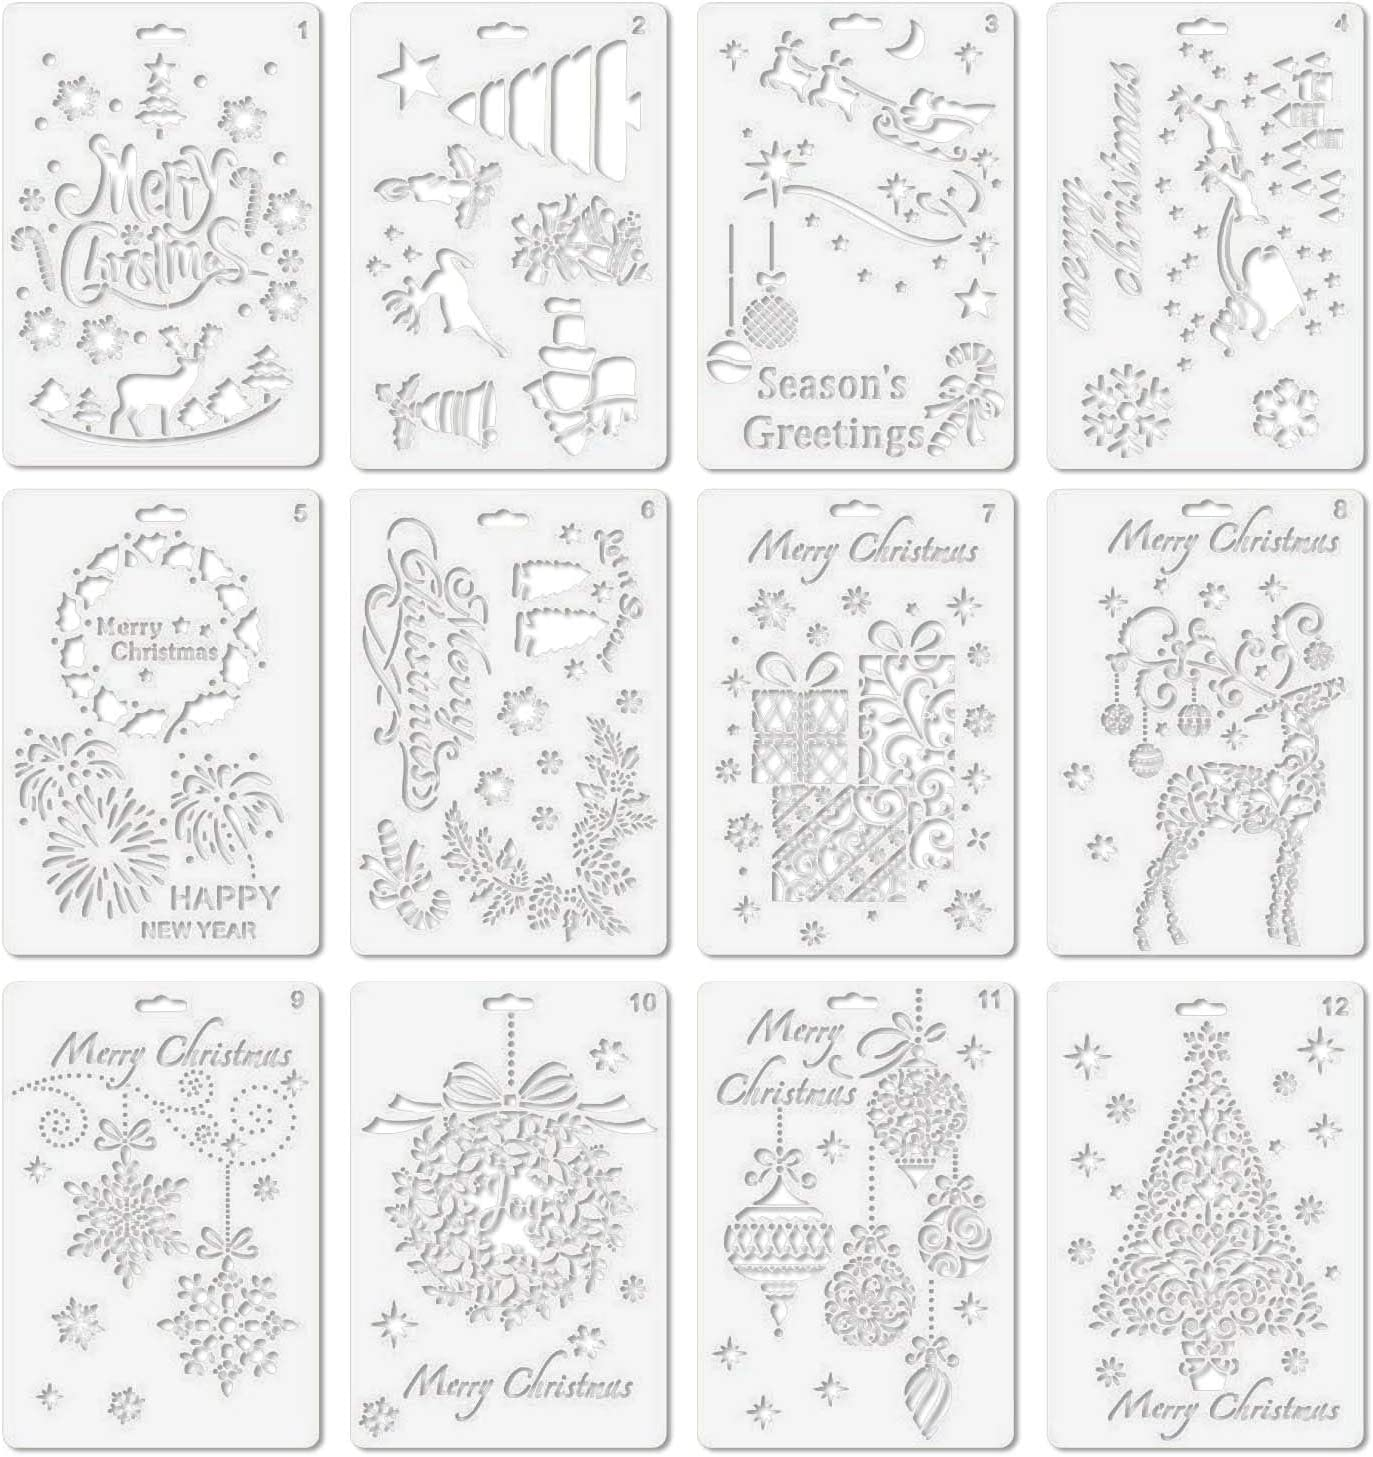 Christmas Stencils Elisona 12PCS Assorted Style Merry Christmas Painting Drawing Stencils Templates for Pigment School Project Scrapbooking DIY Craft Album